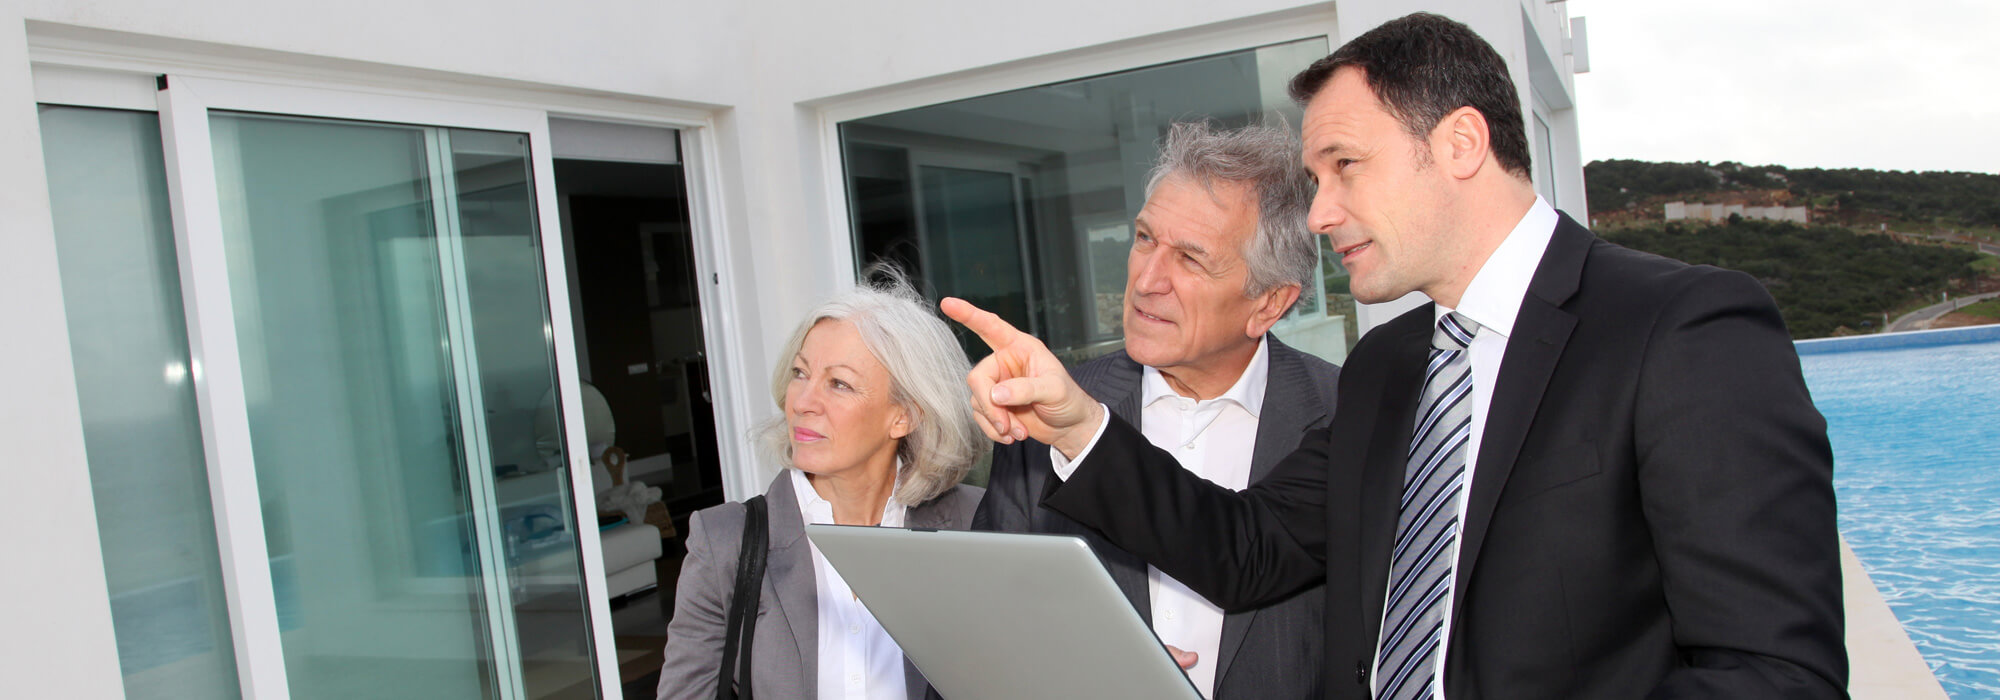 Buying Property Checklist - Header Image - Couple looking at buying property